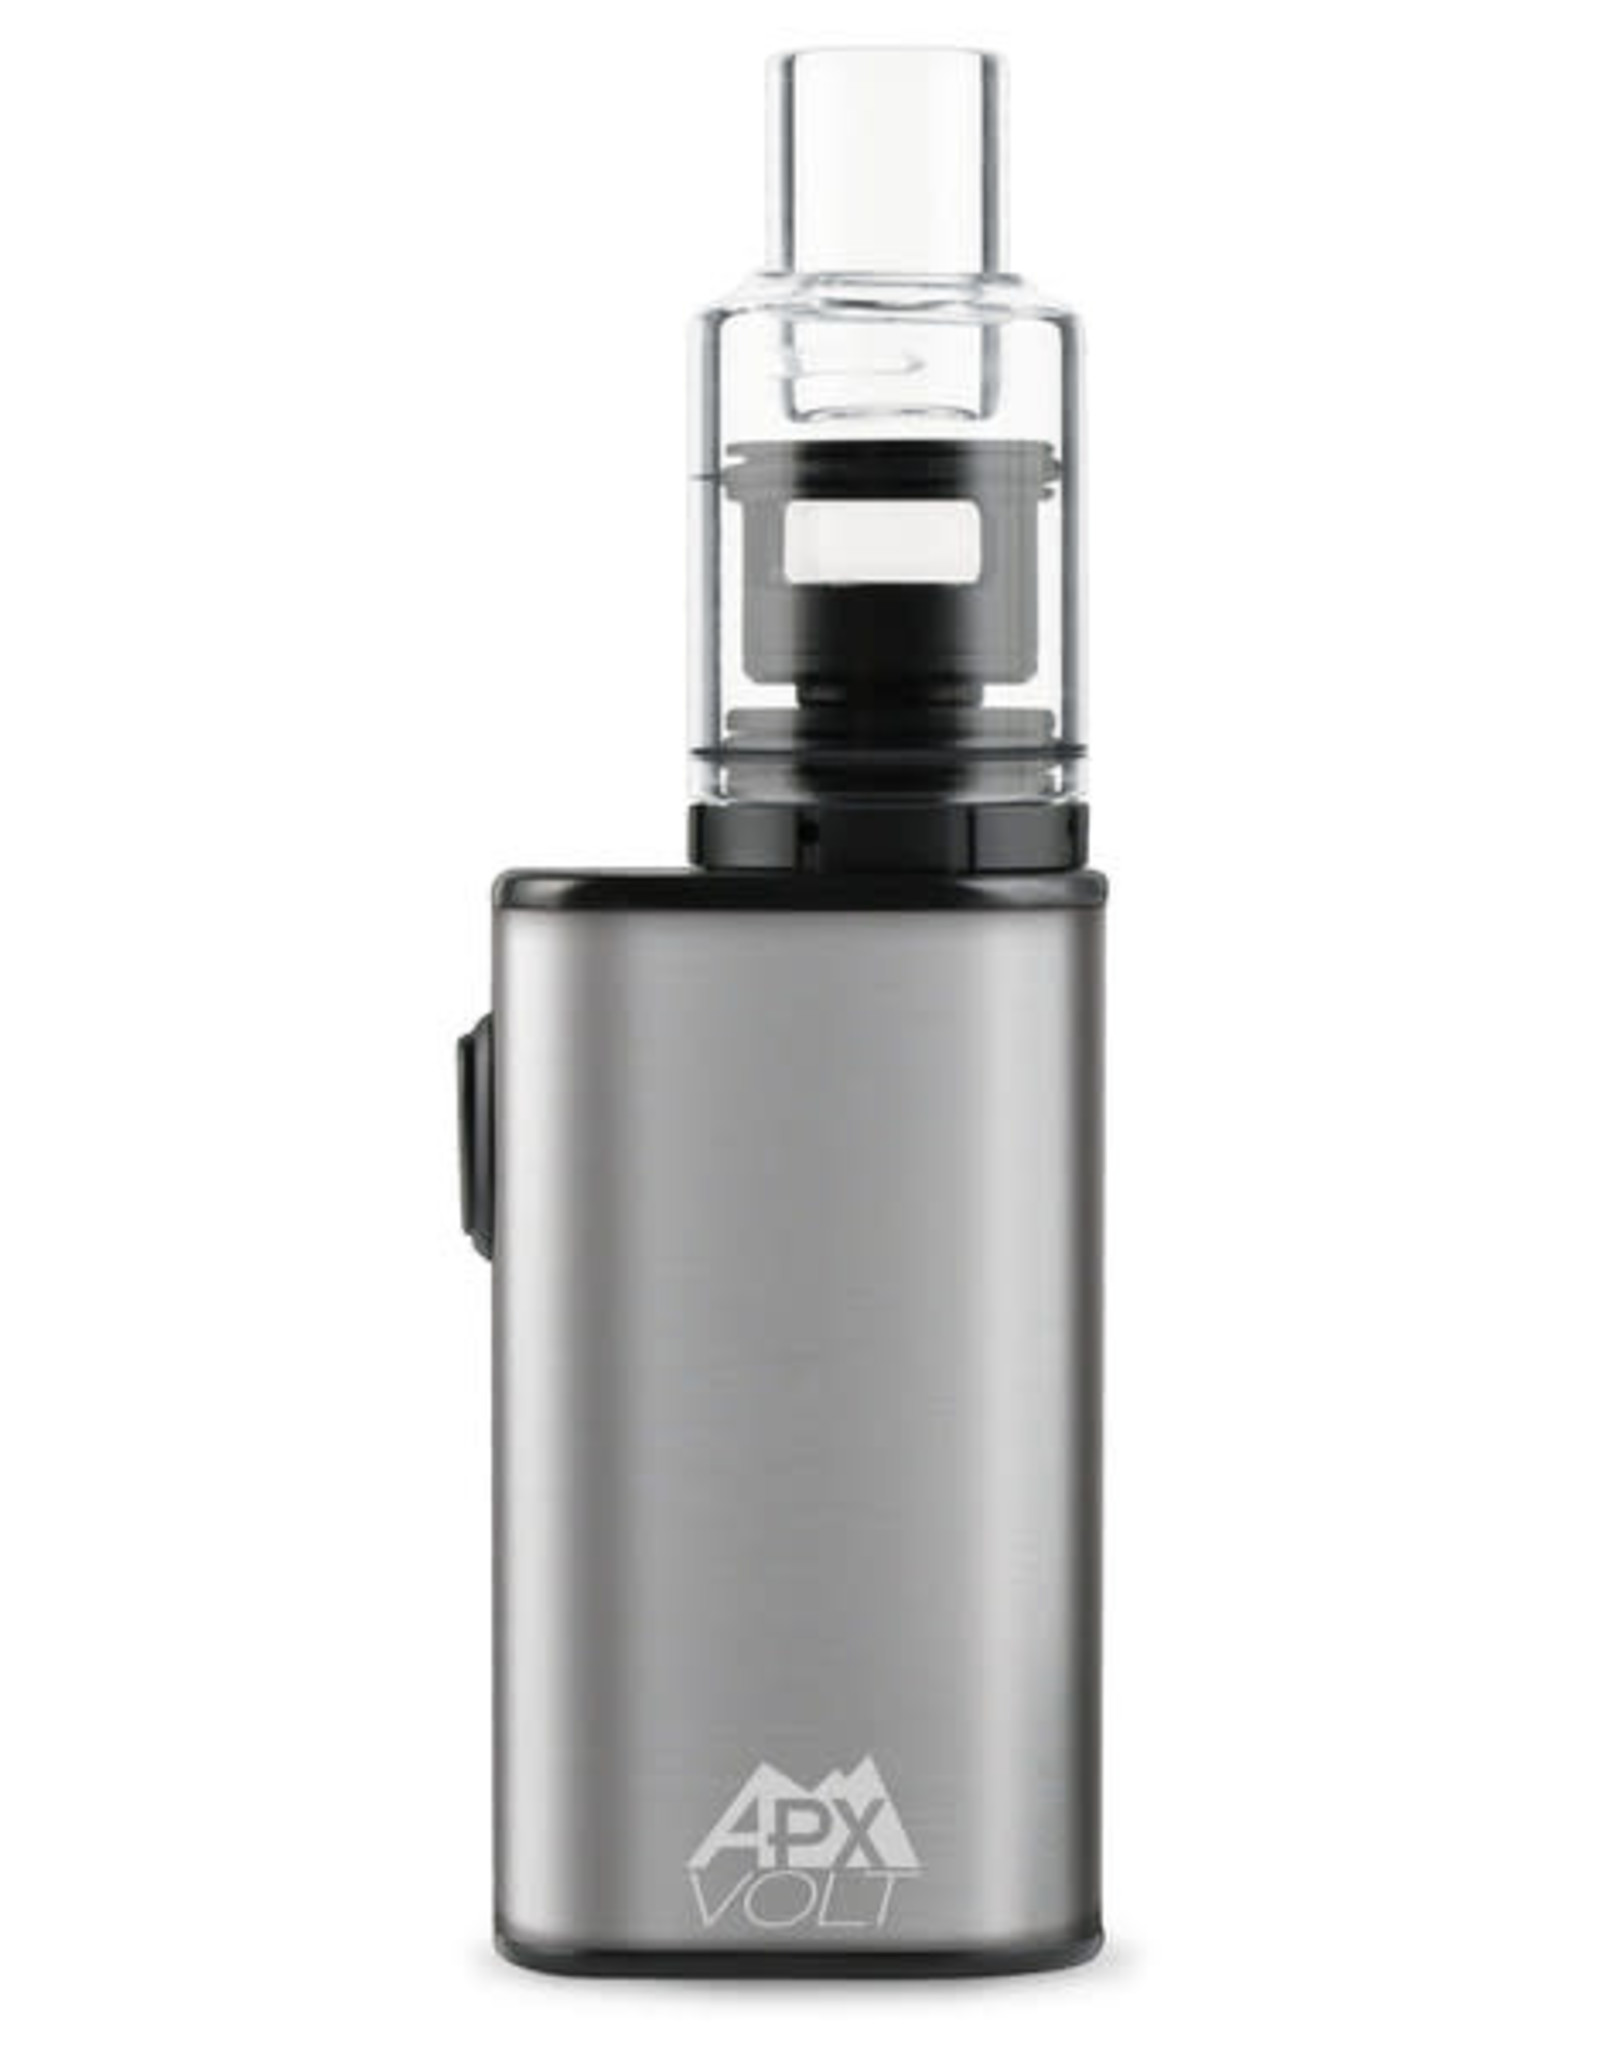 Pulsar Pulsar APX VOLT Variable Voltage Vaporizer - Silver